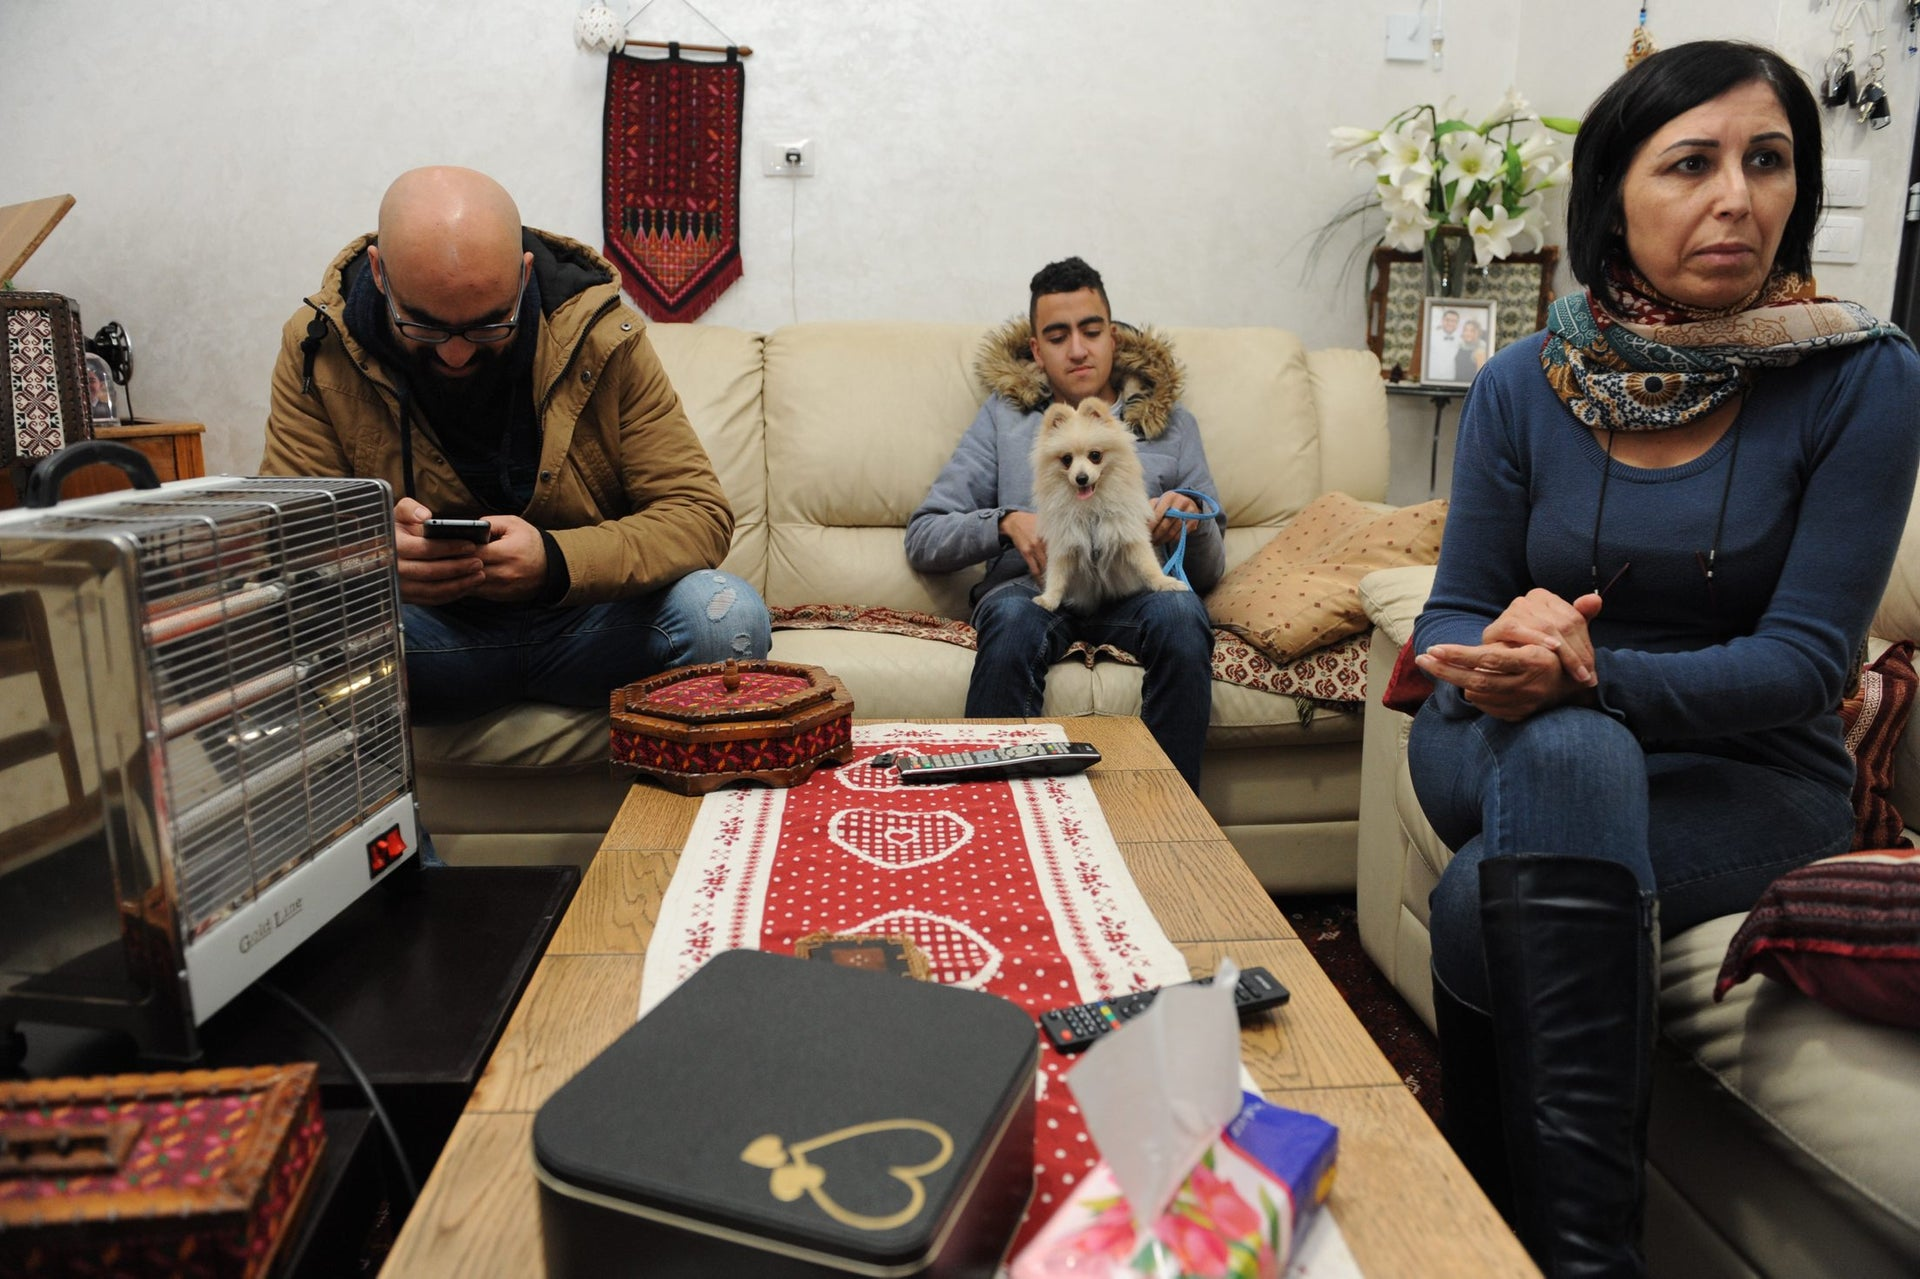 Members of the Abad familywith their dog Gucci at home in Nazareth.